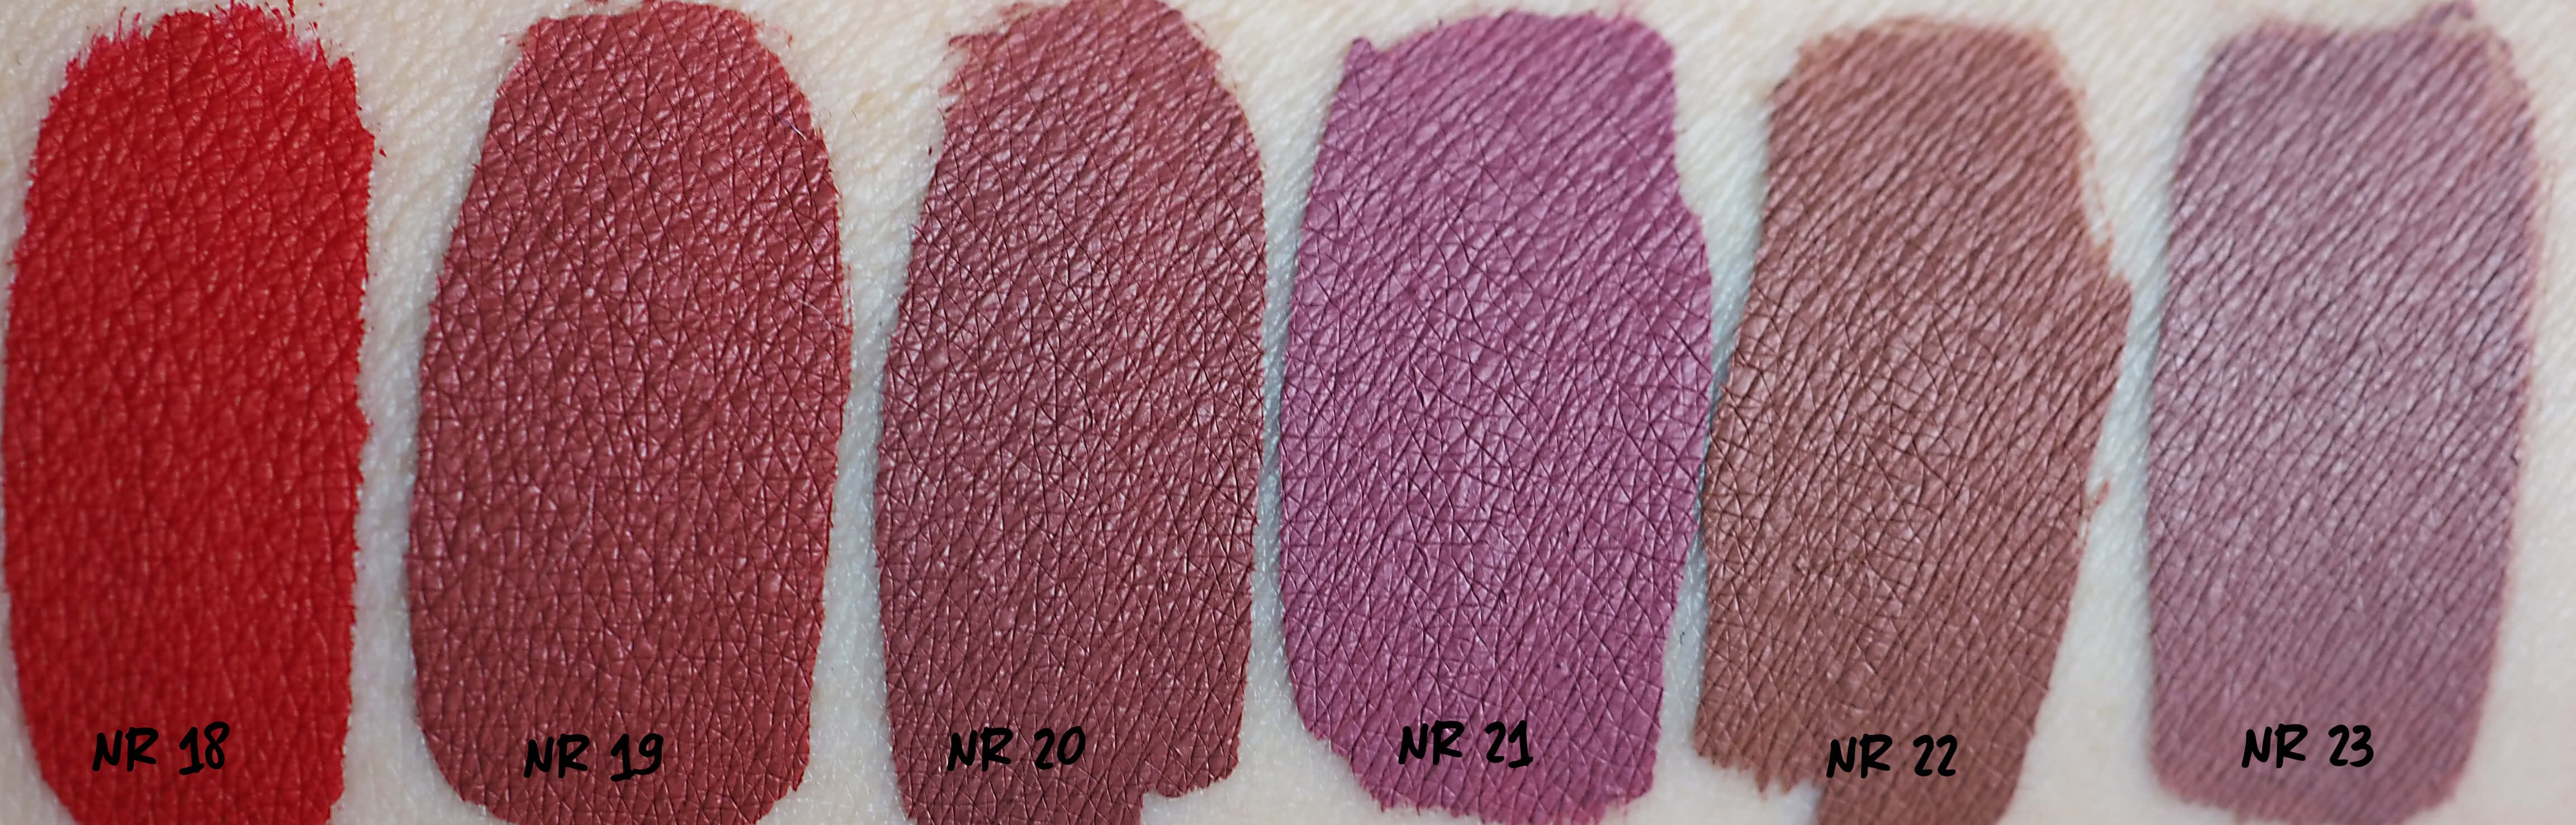 Swatches GOLDEN ROSE LONGSTAY LIQUID MATTE LIPSTICK